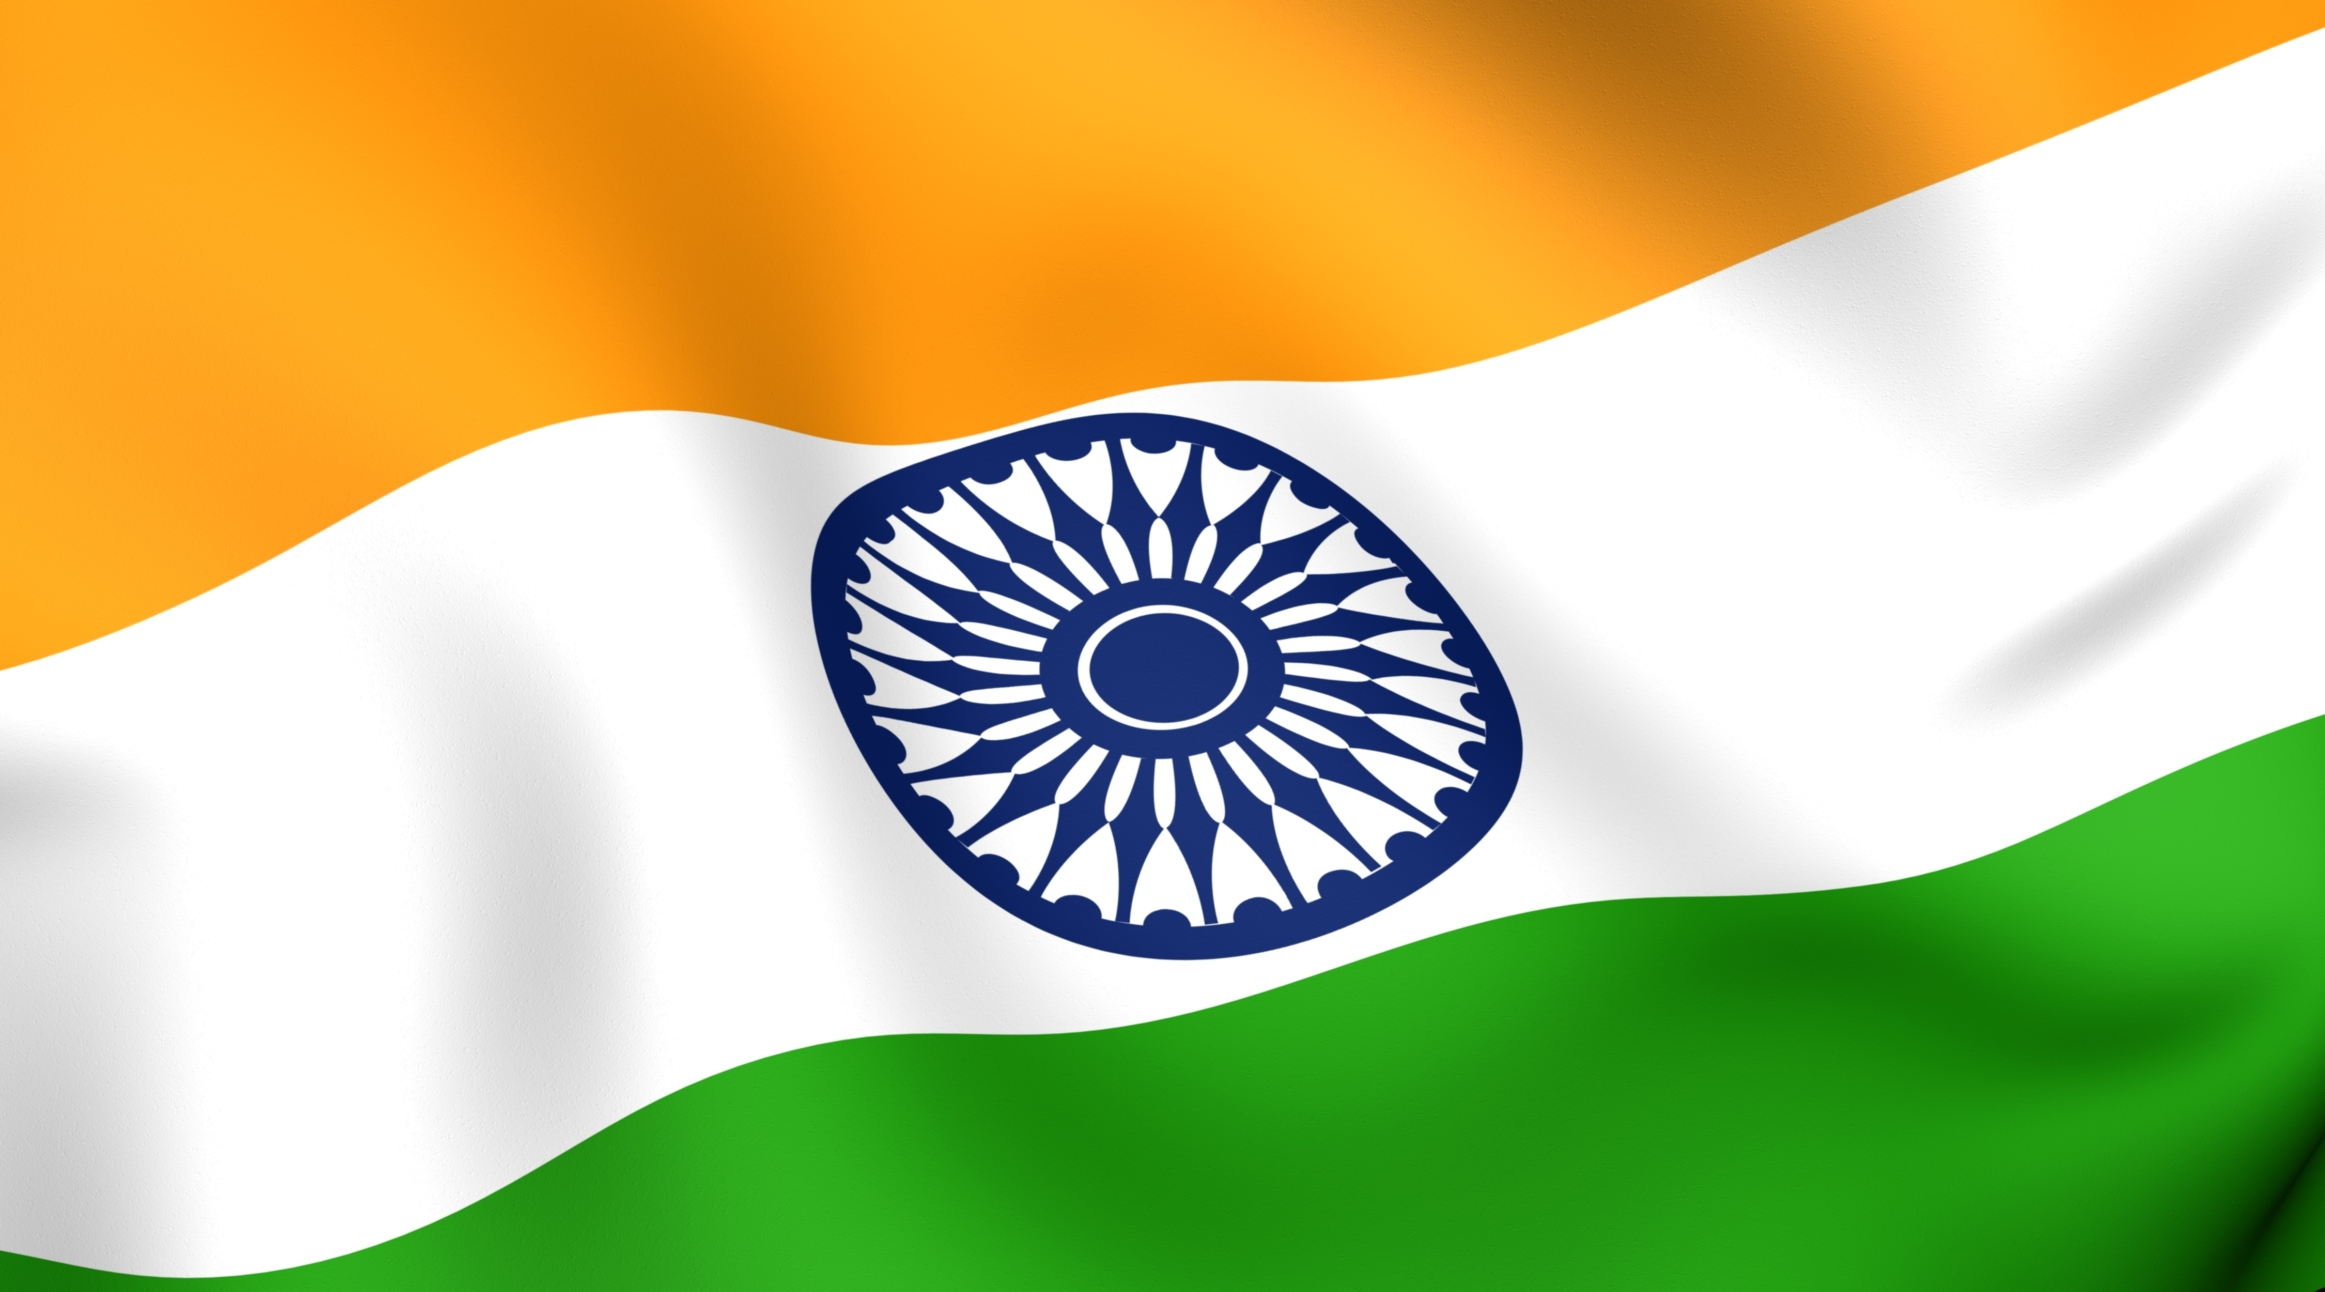 India Flag Hd Art: Indian Flag Wallpapers & HD Images 2018 [Free Download]